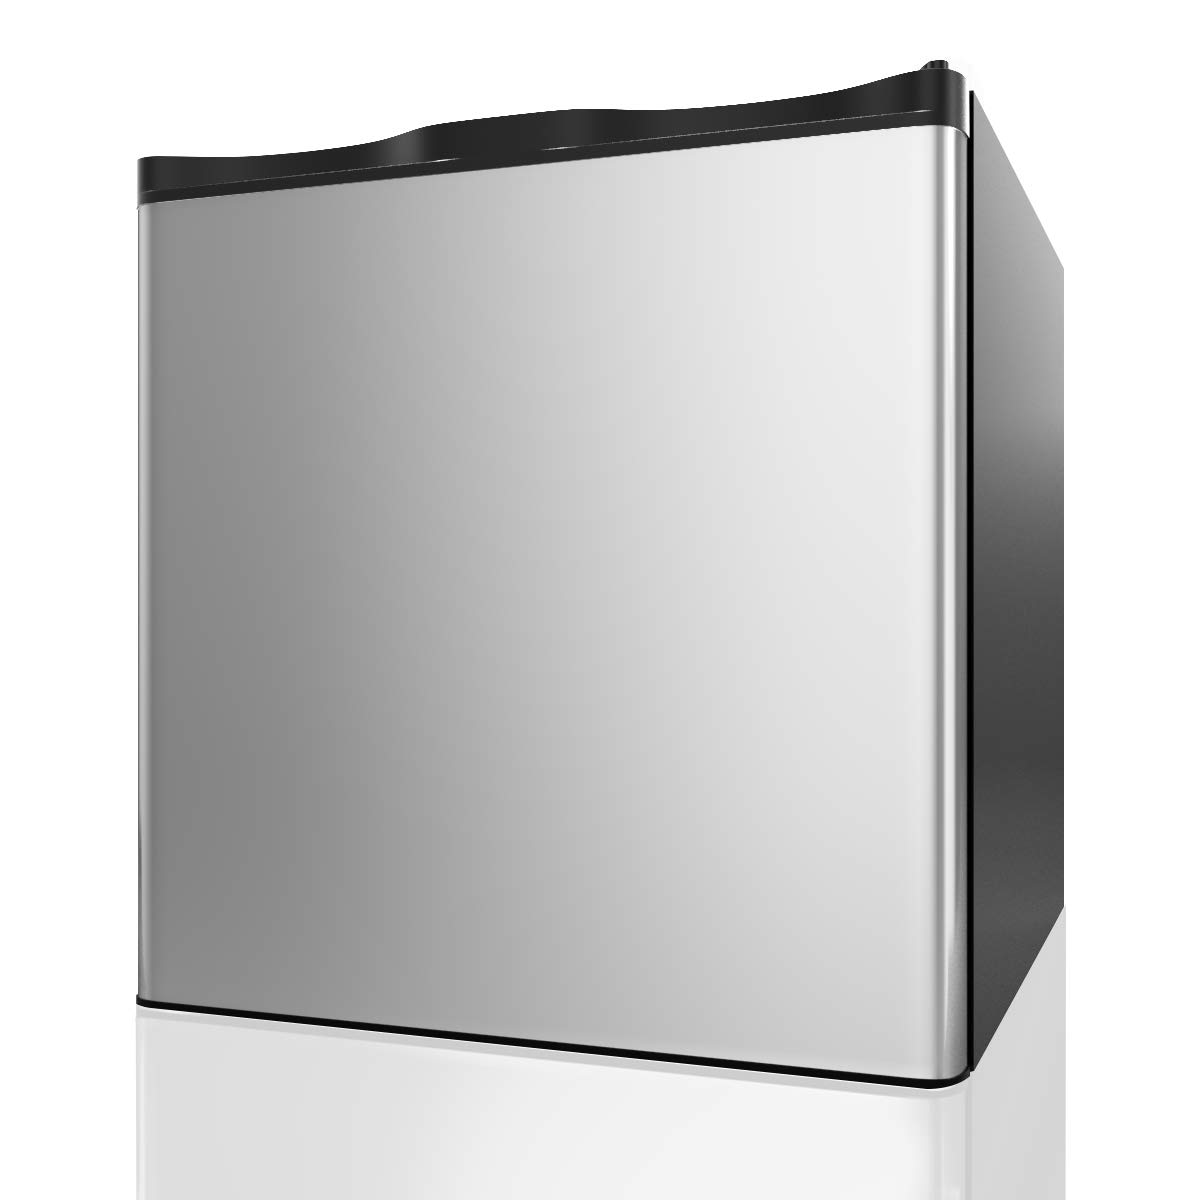 COSTWAY Upright Freezer